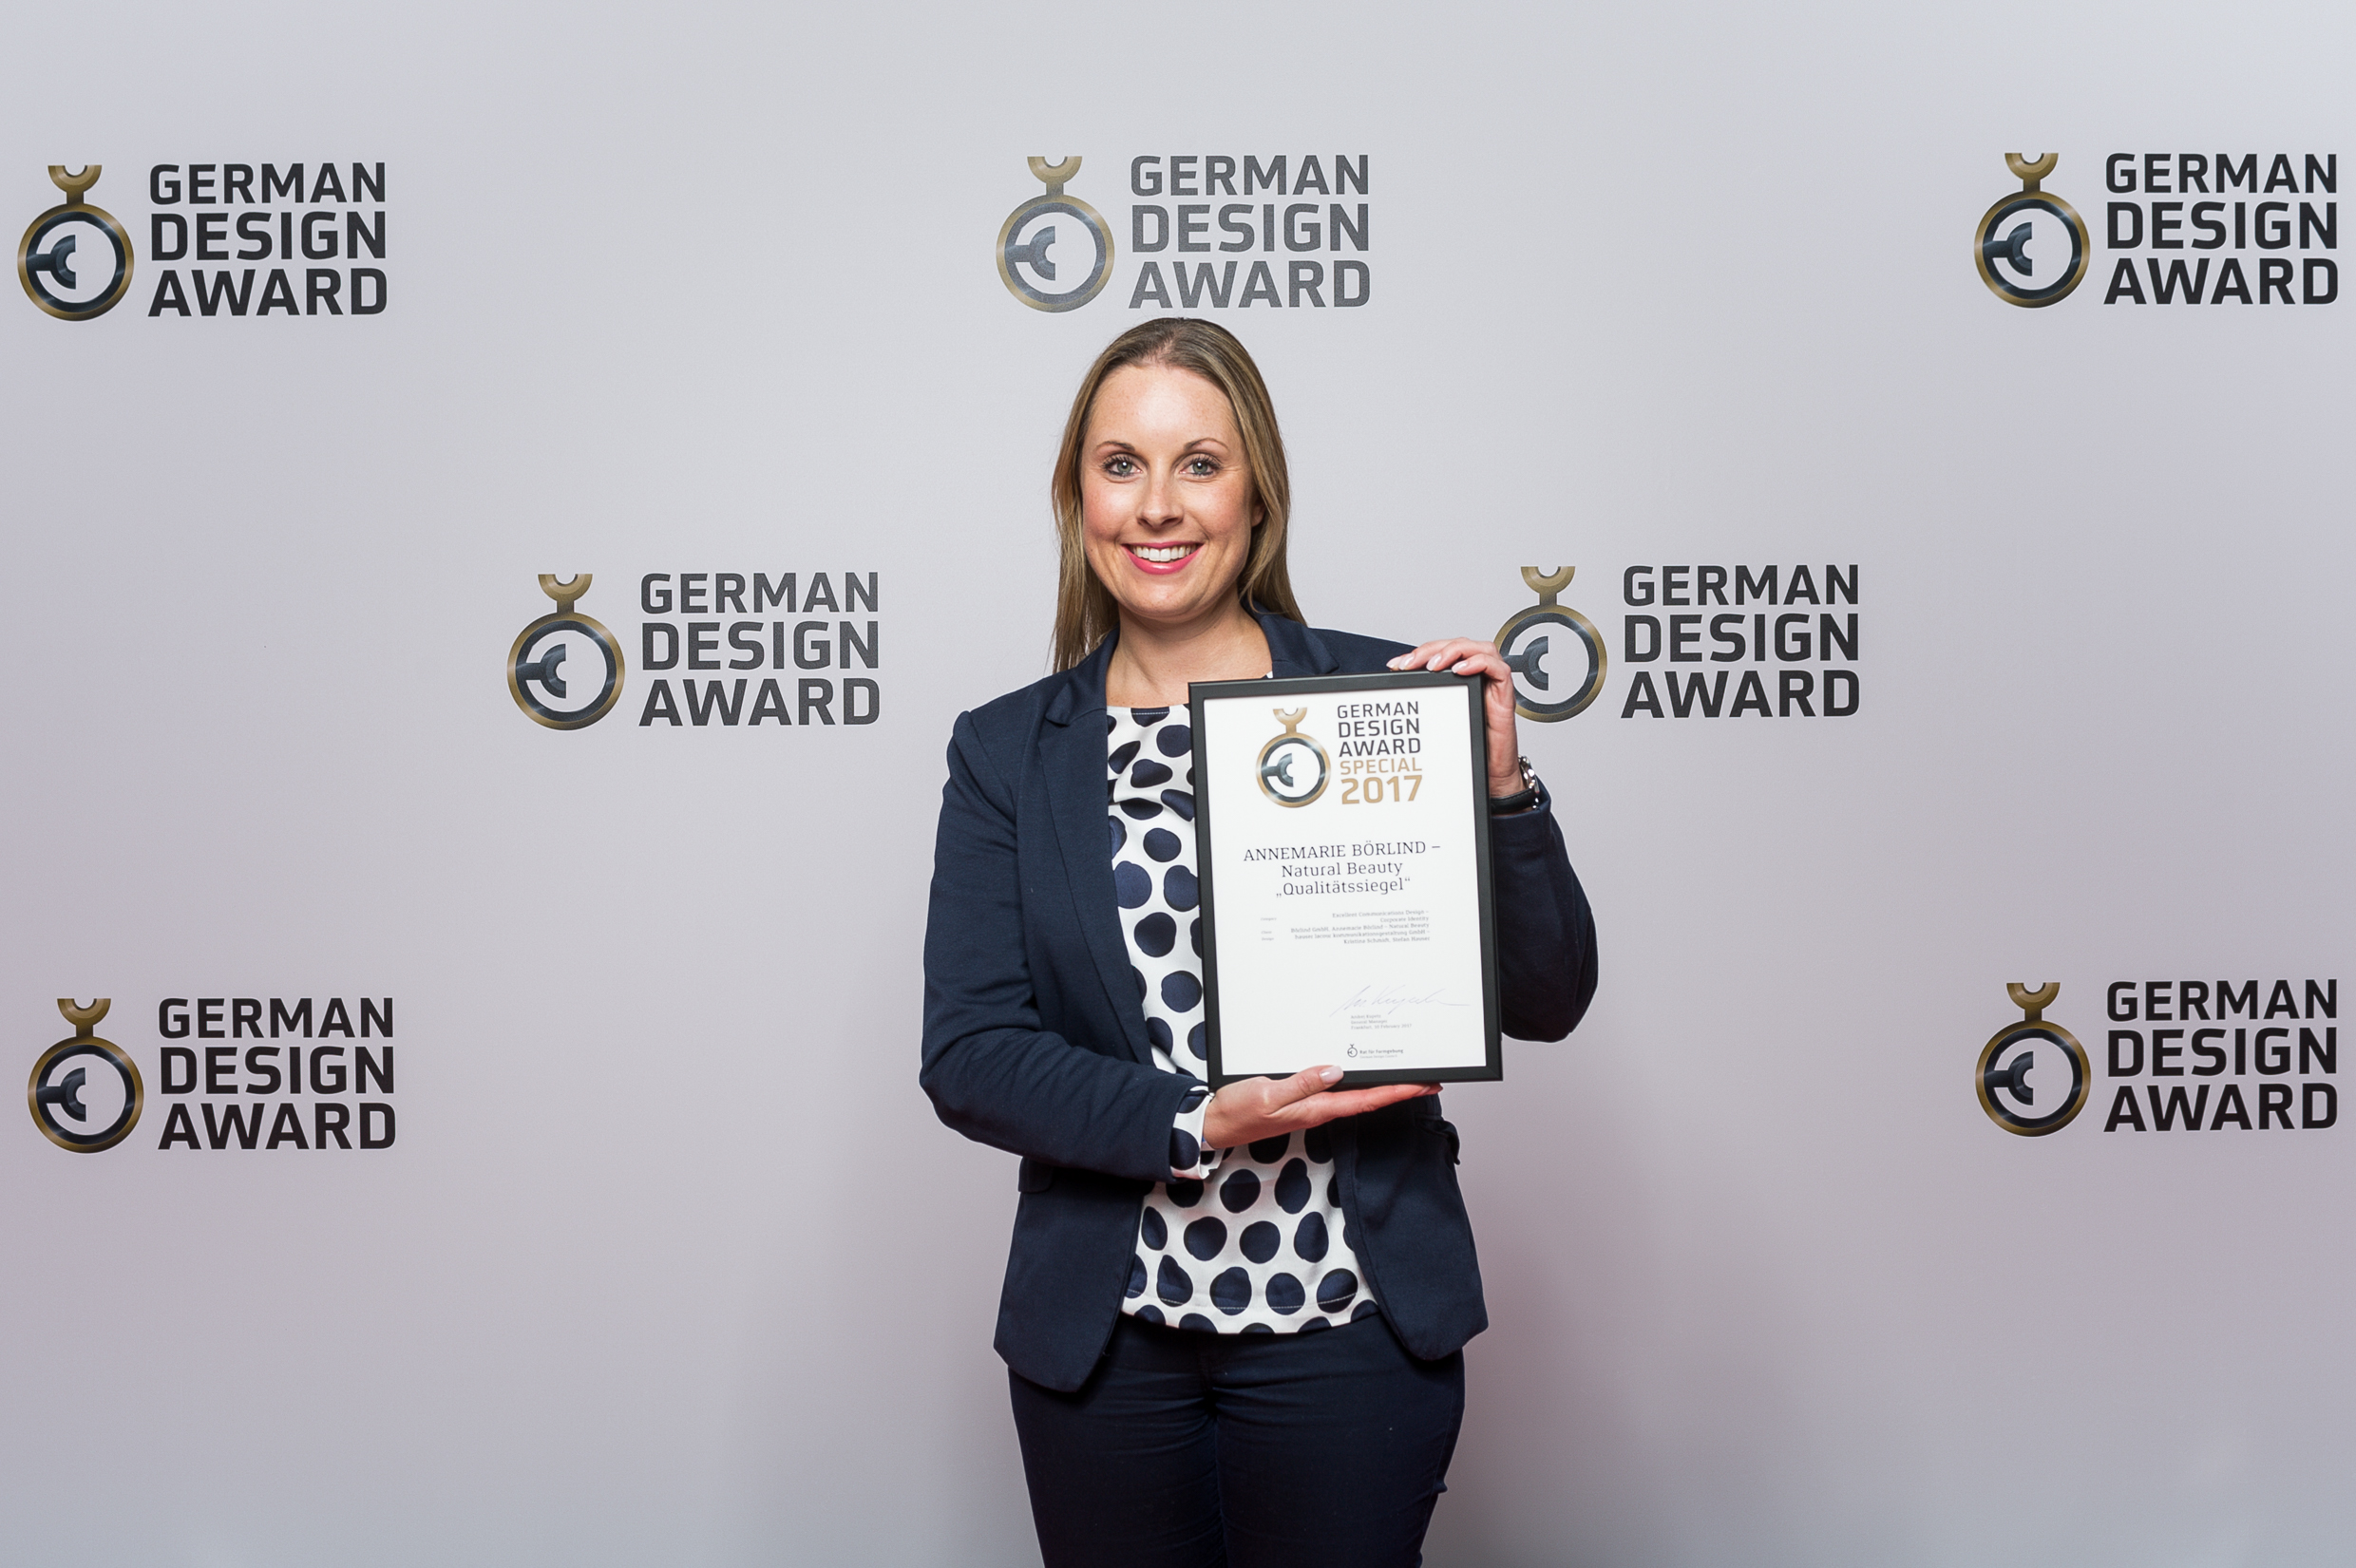 ANNEMARIE BÖRLIND - Catharina Kübler at the German Design Award